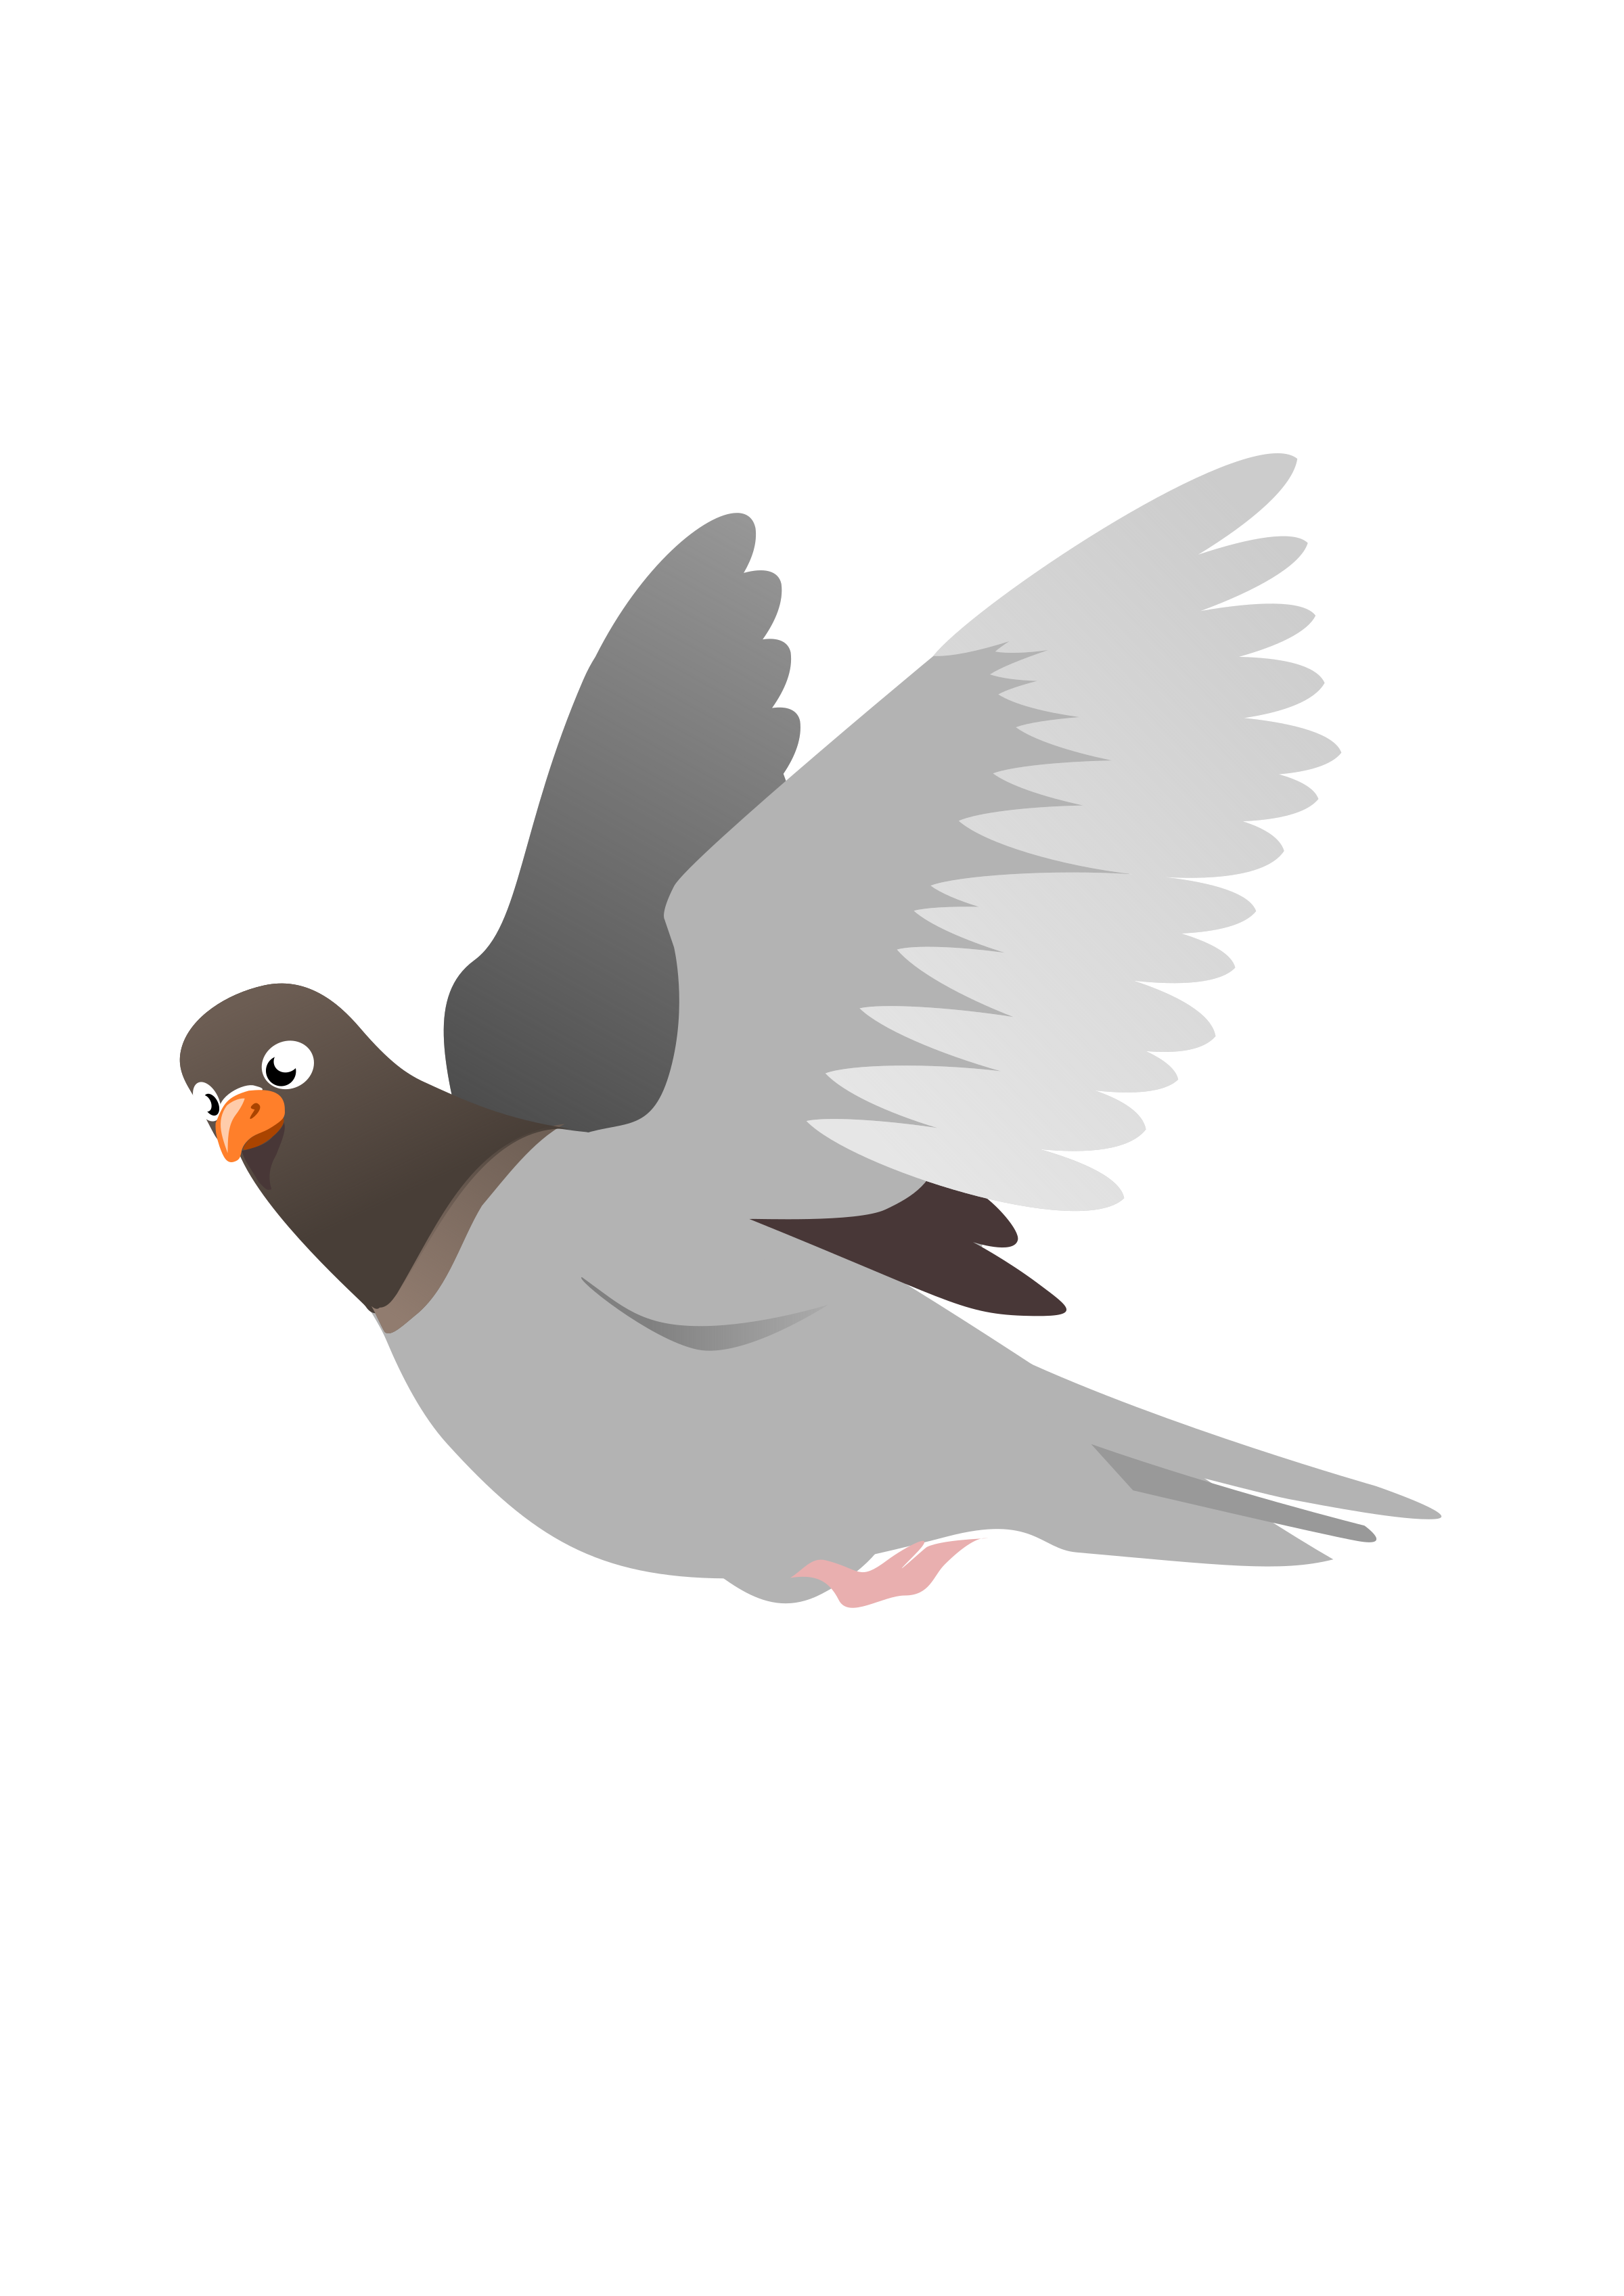 Pigeon clipart. A flying big image